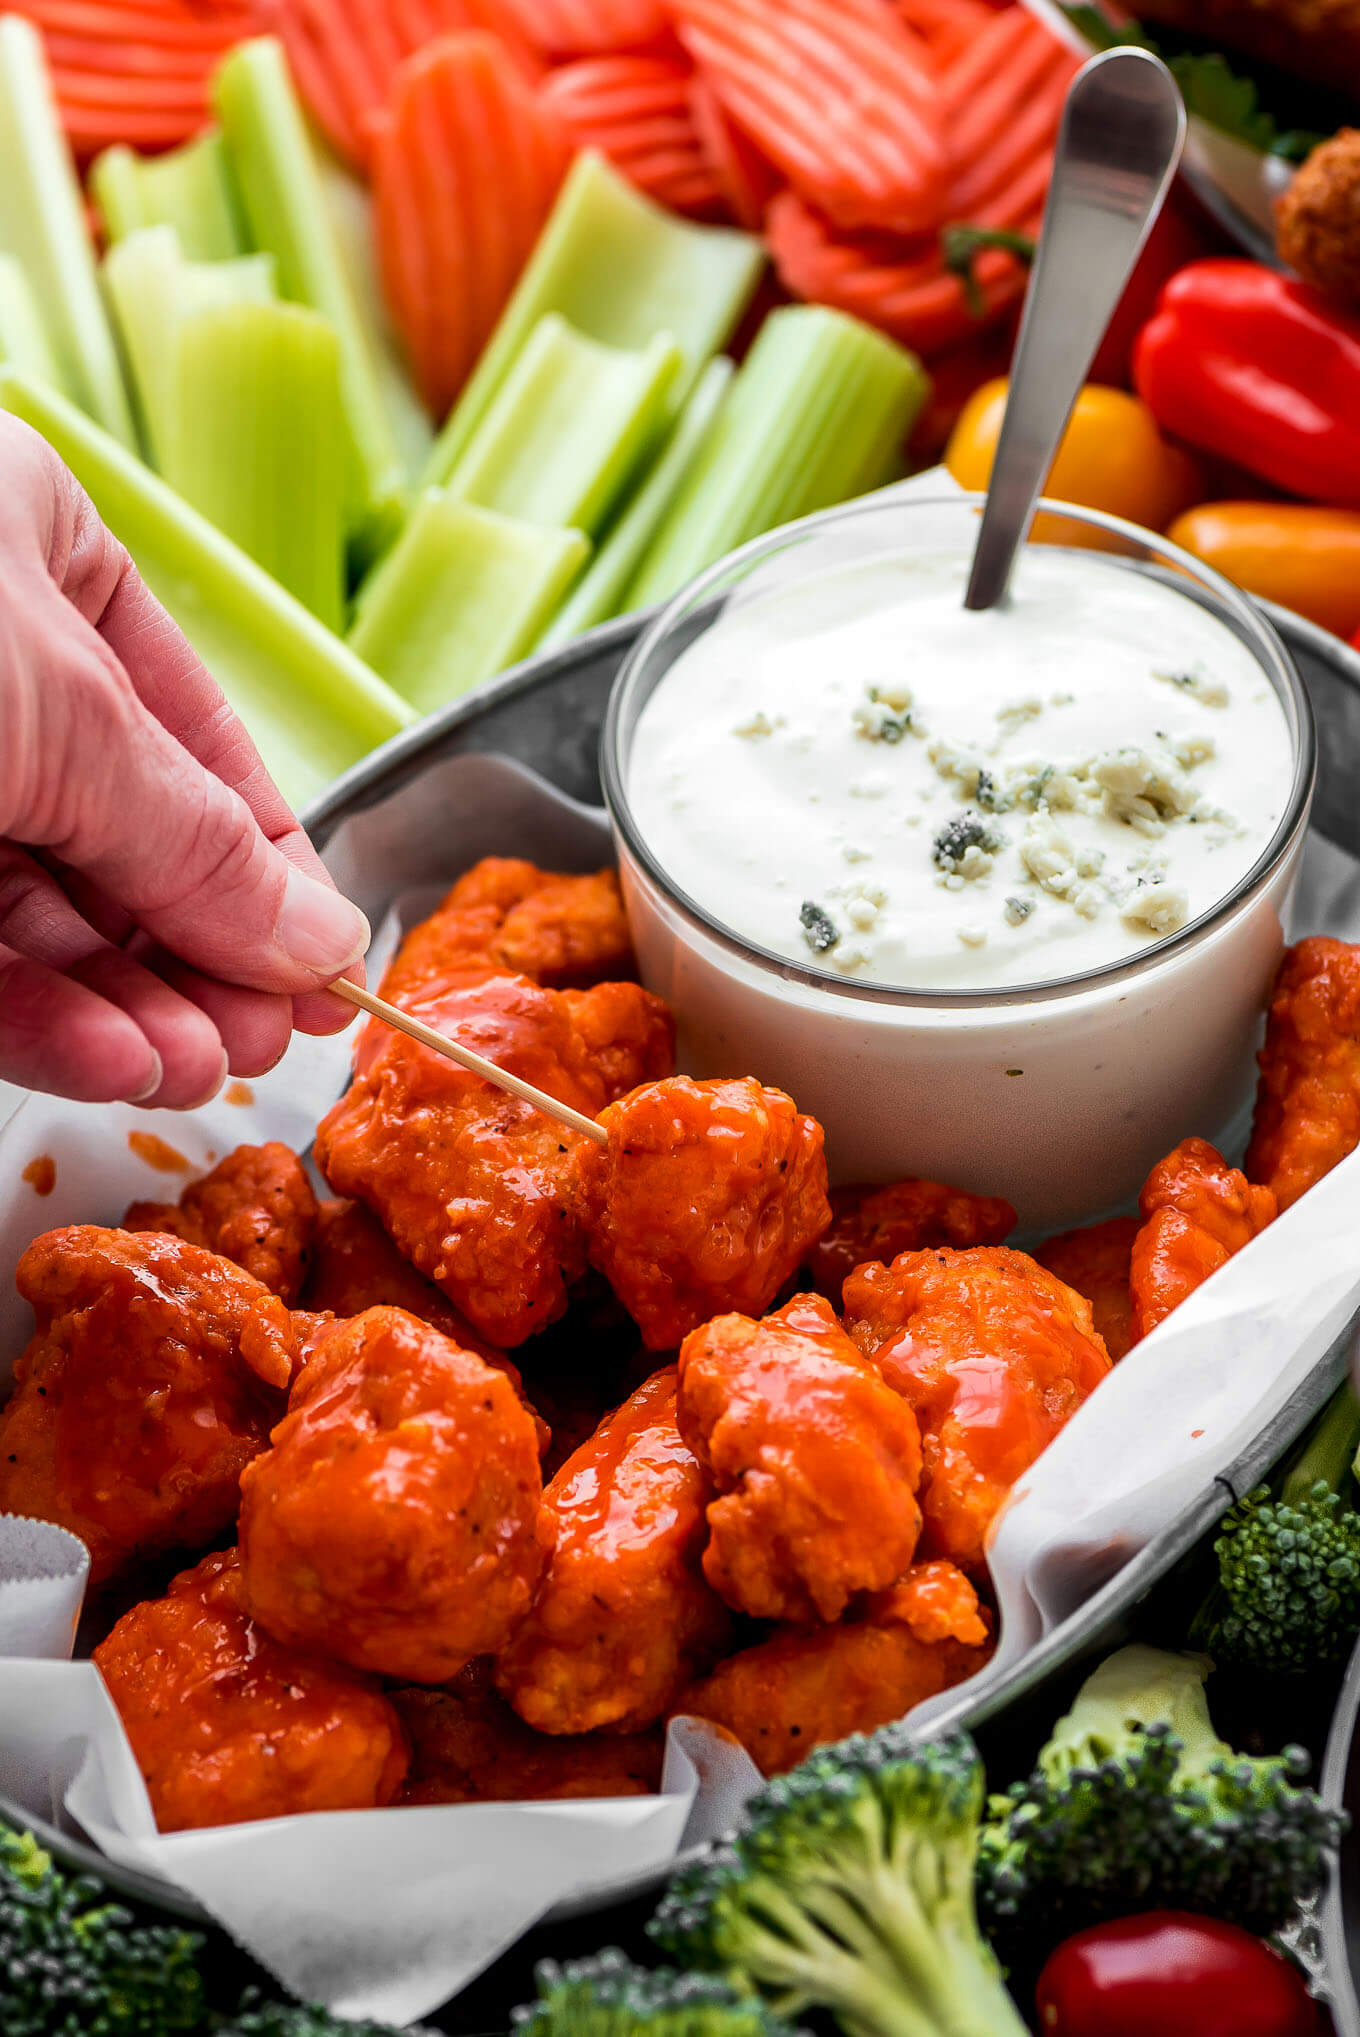 A hand holding a toothpick poking a buffalo chicken bite.